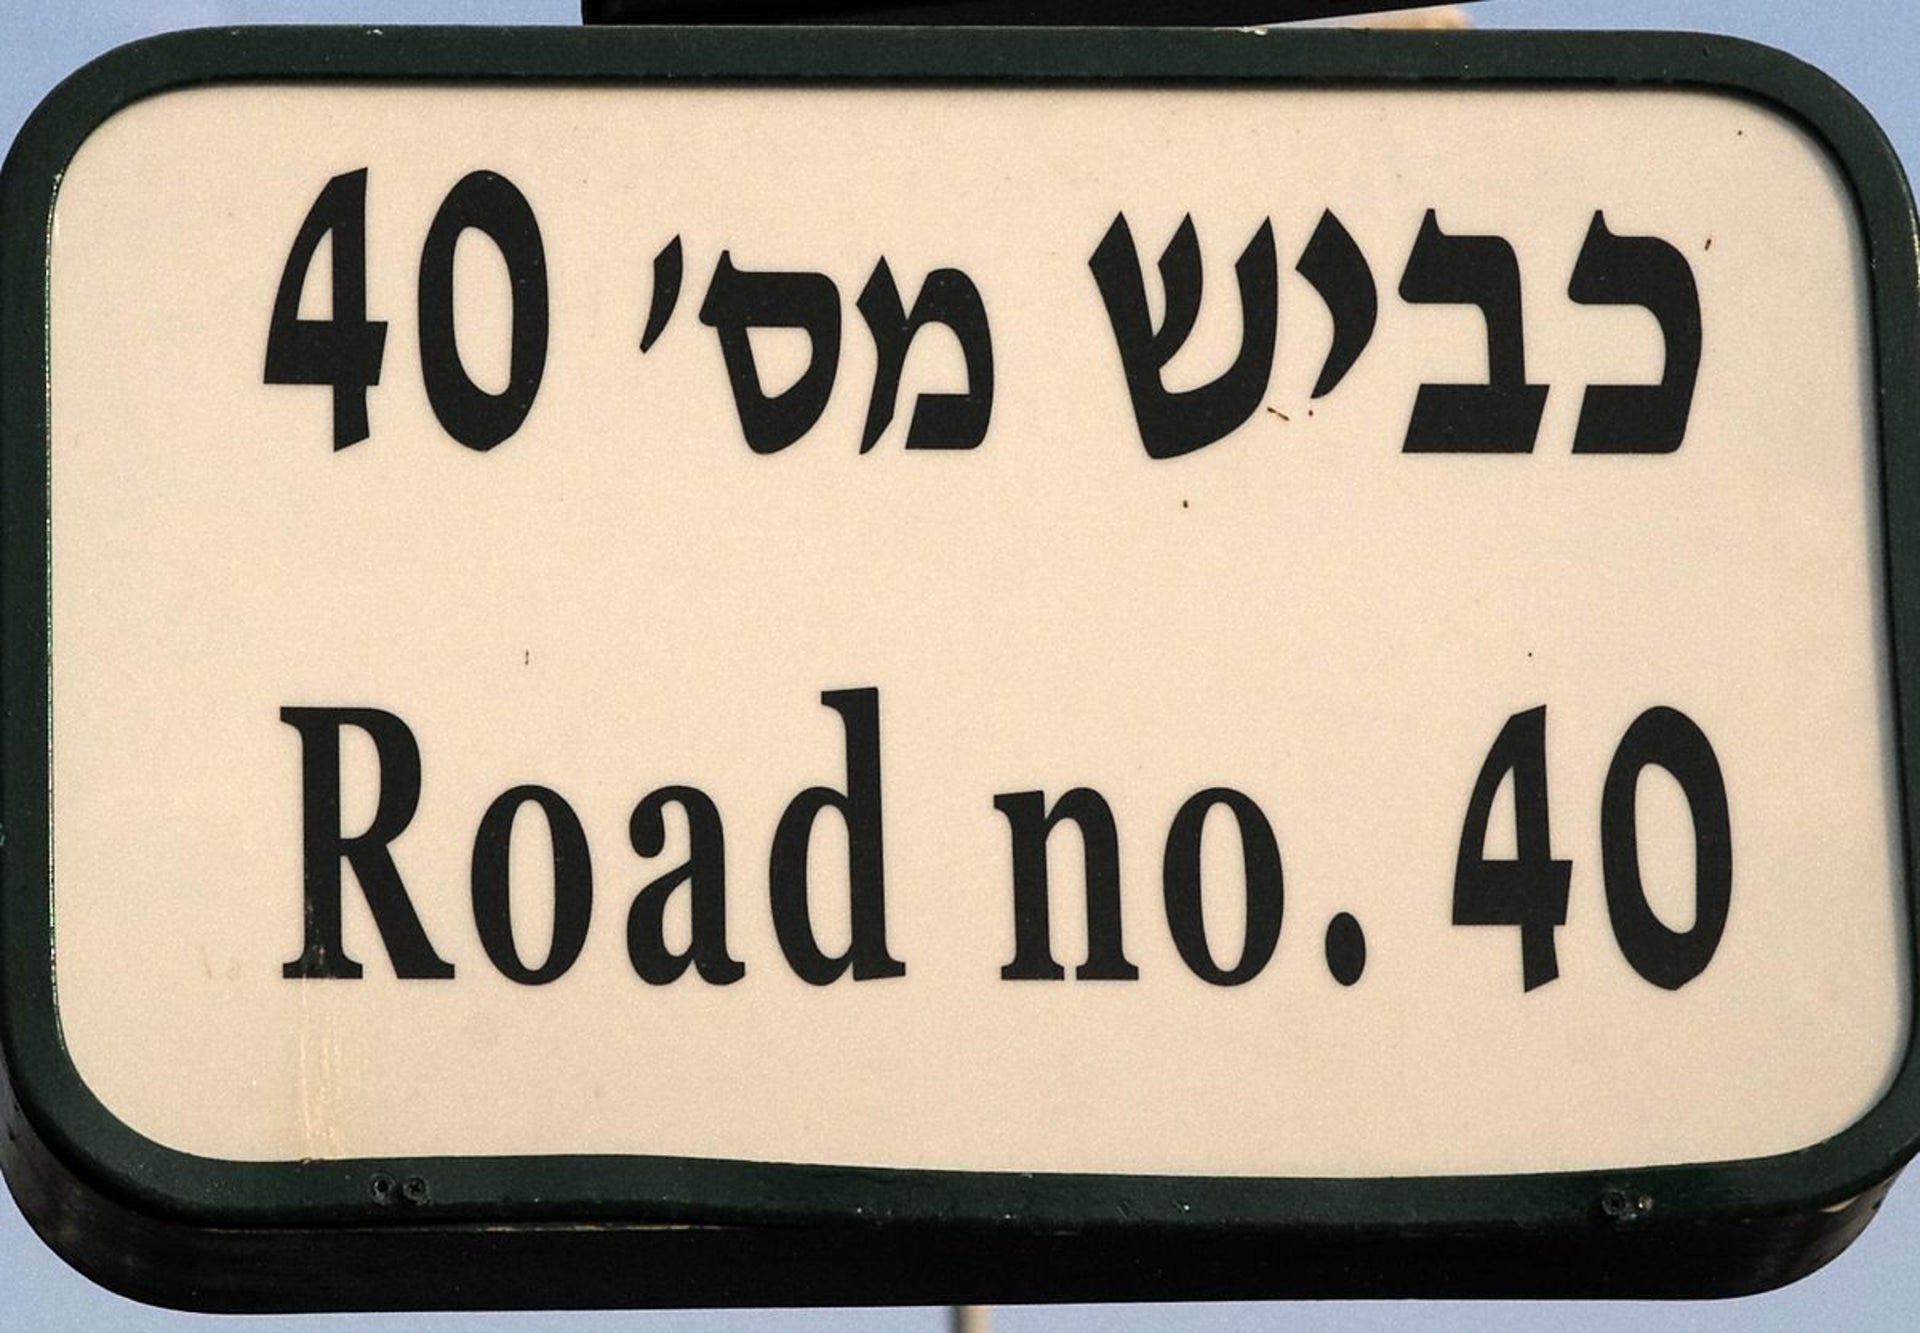 A sign pointing to Highway 40.